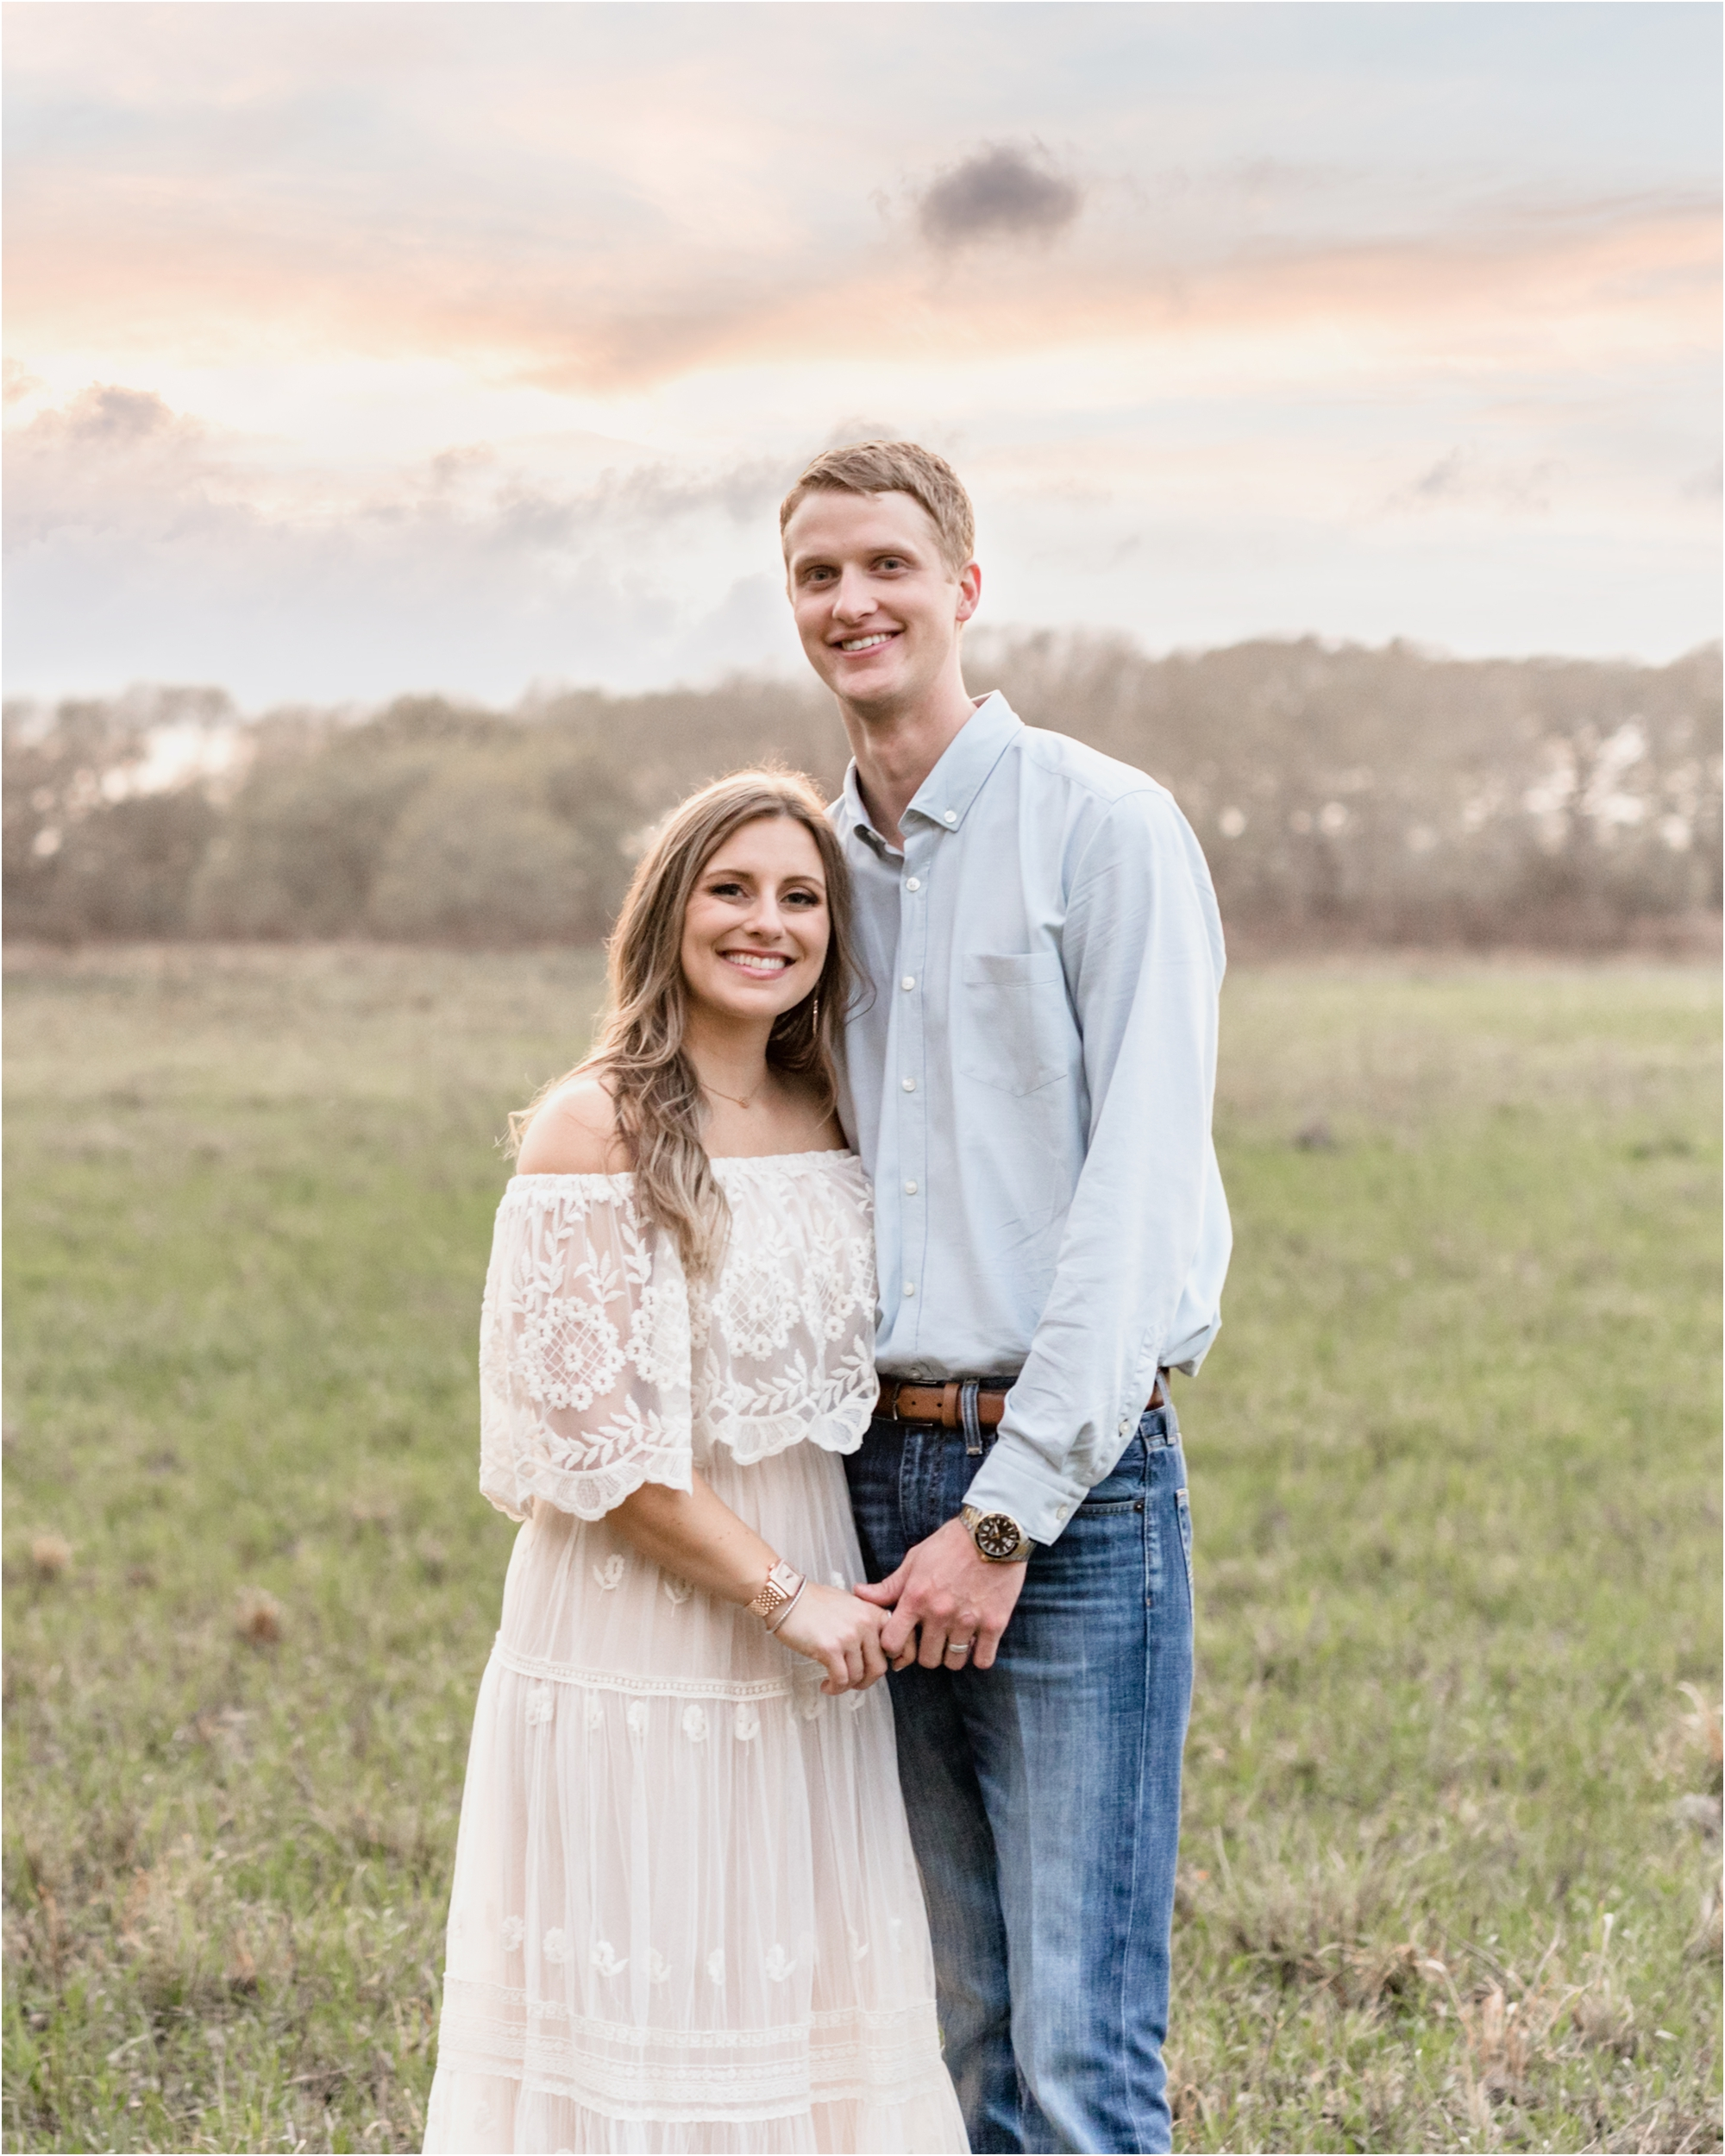 Husband and wife smiling at camera during sunset field session by Houston surrogate maternity photographer, Lifetime of Clicks Photography.